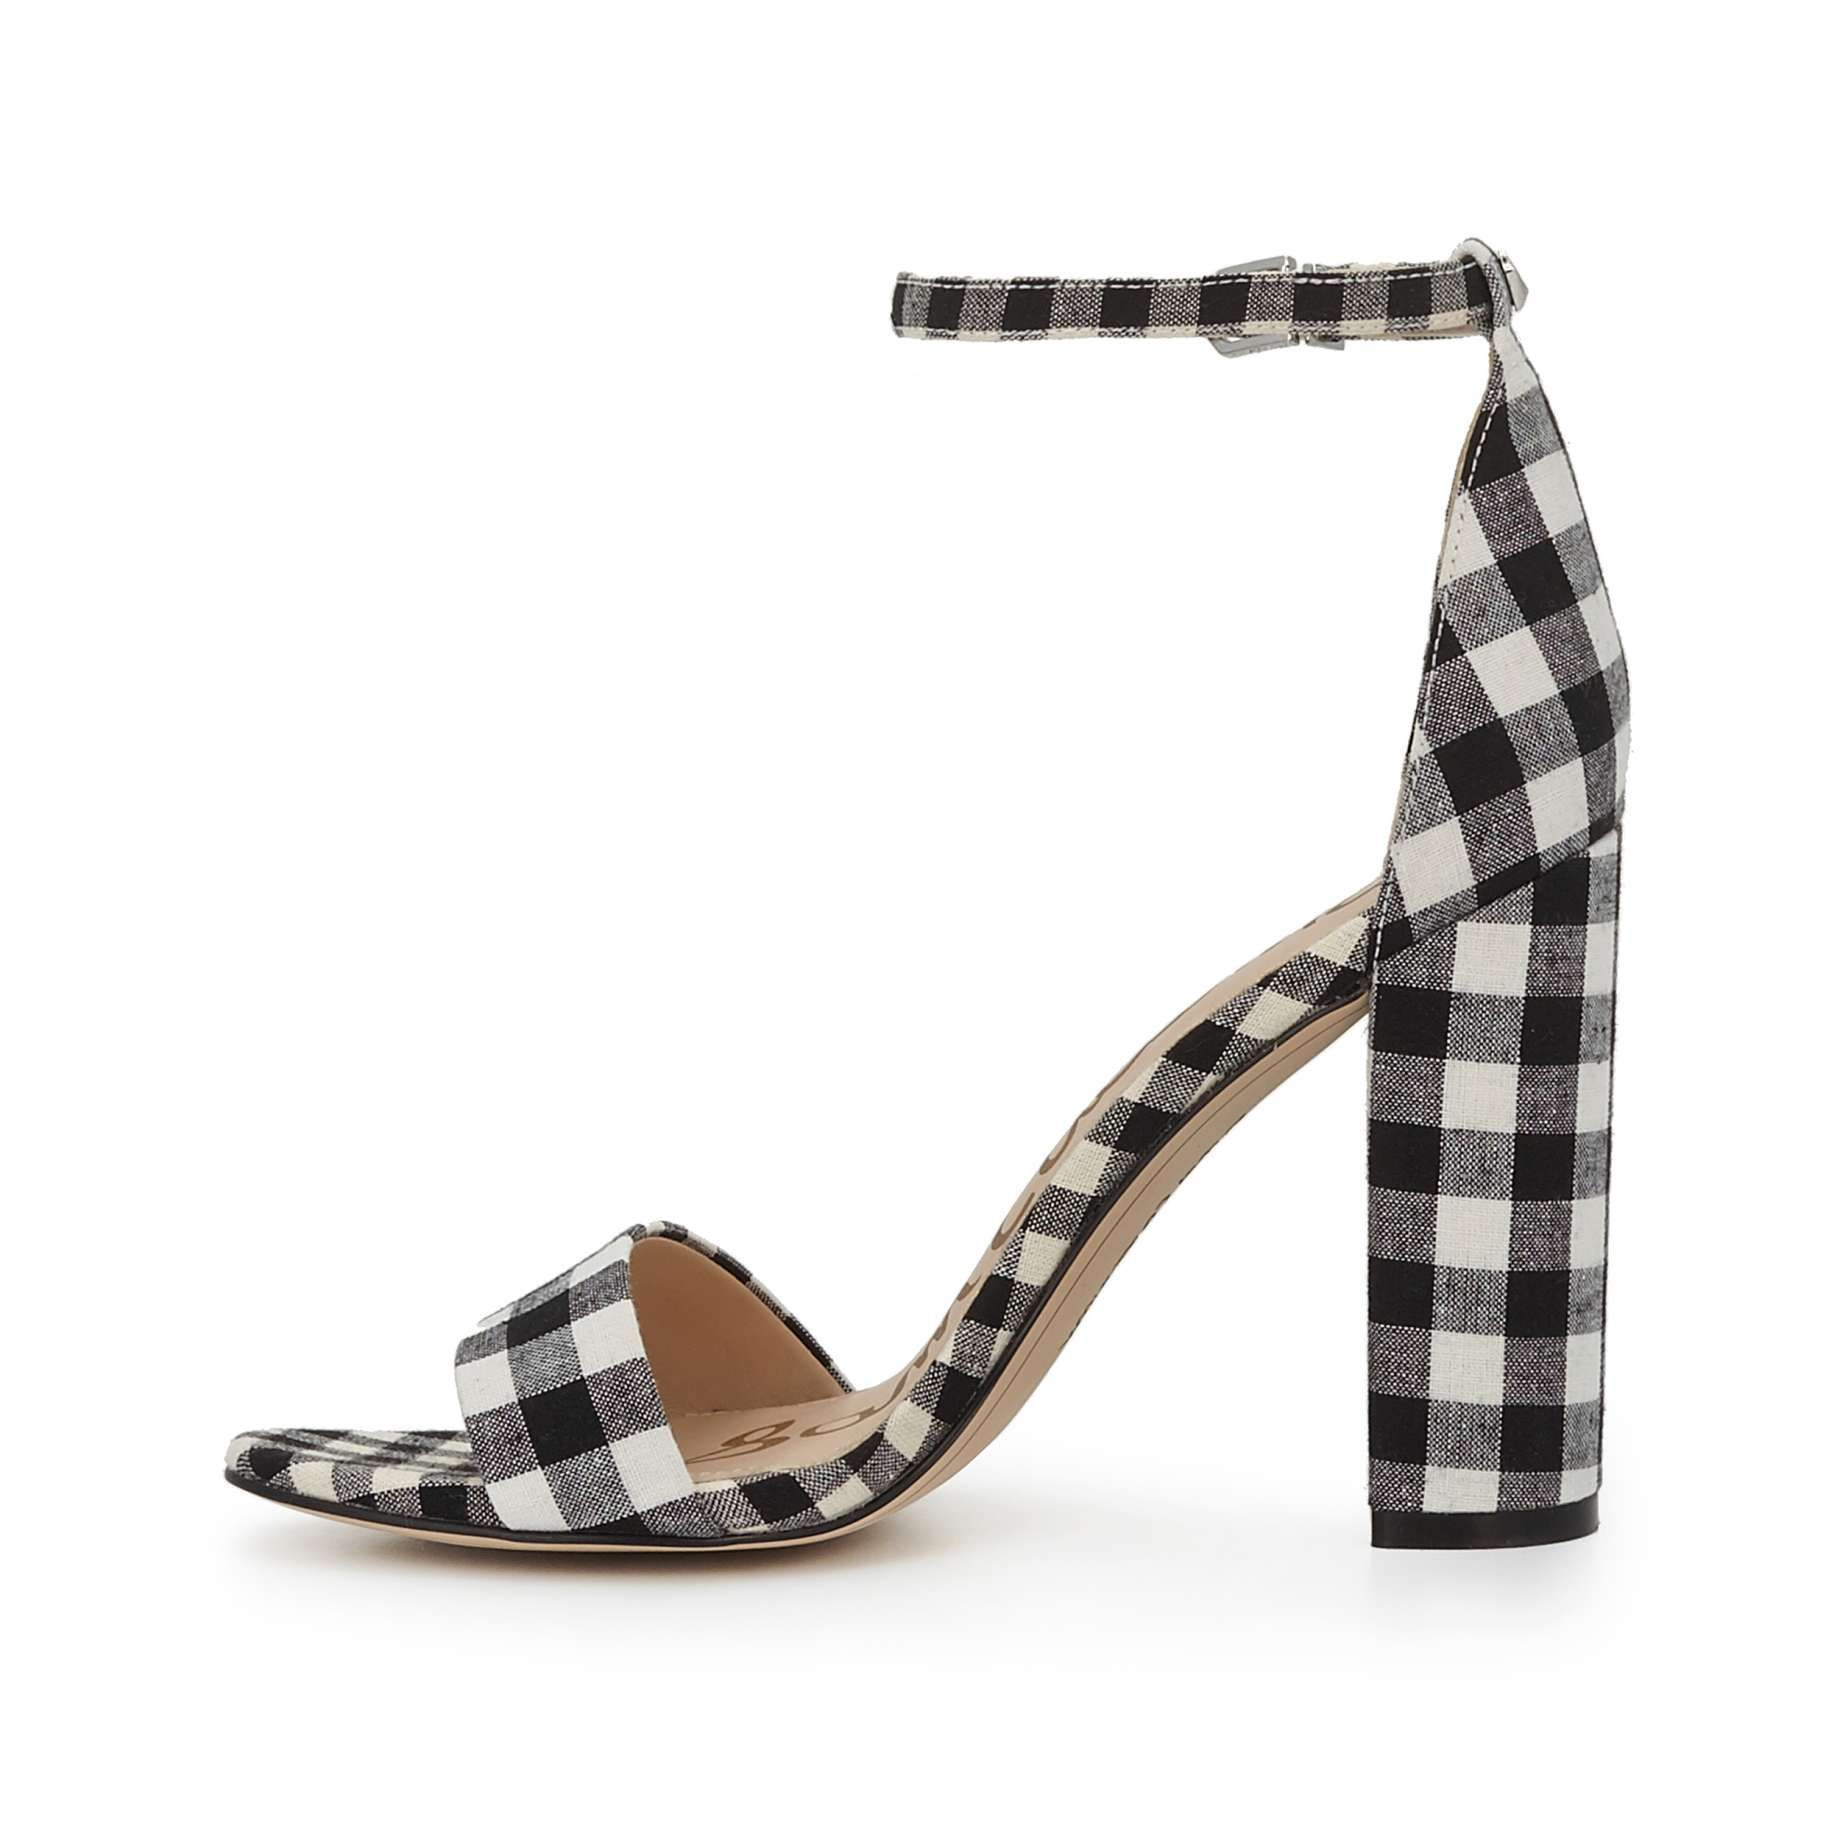 Yaro Ankle Strap Sandal by Sam Edelman - Black/White Gingham - View 5